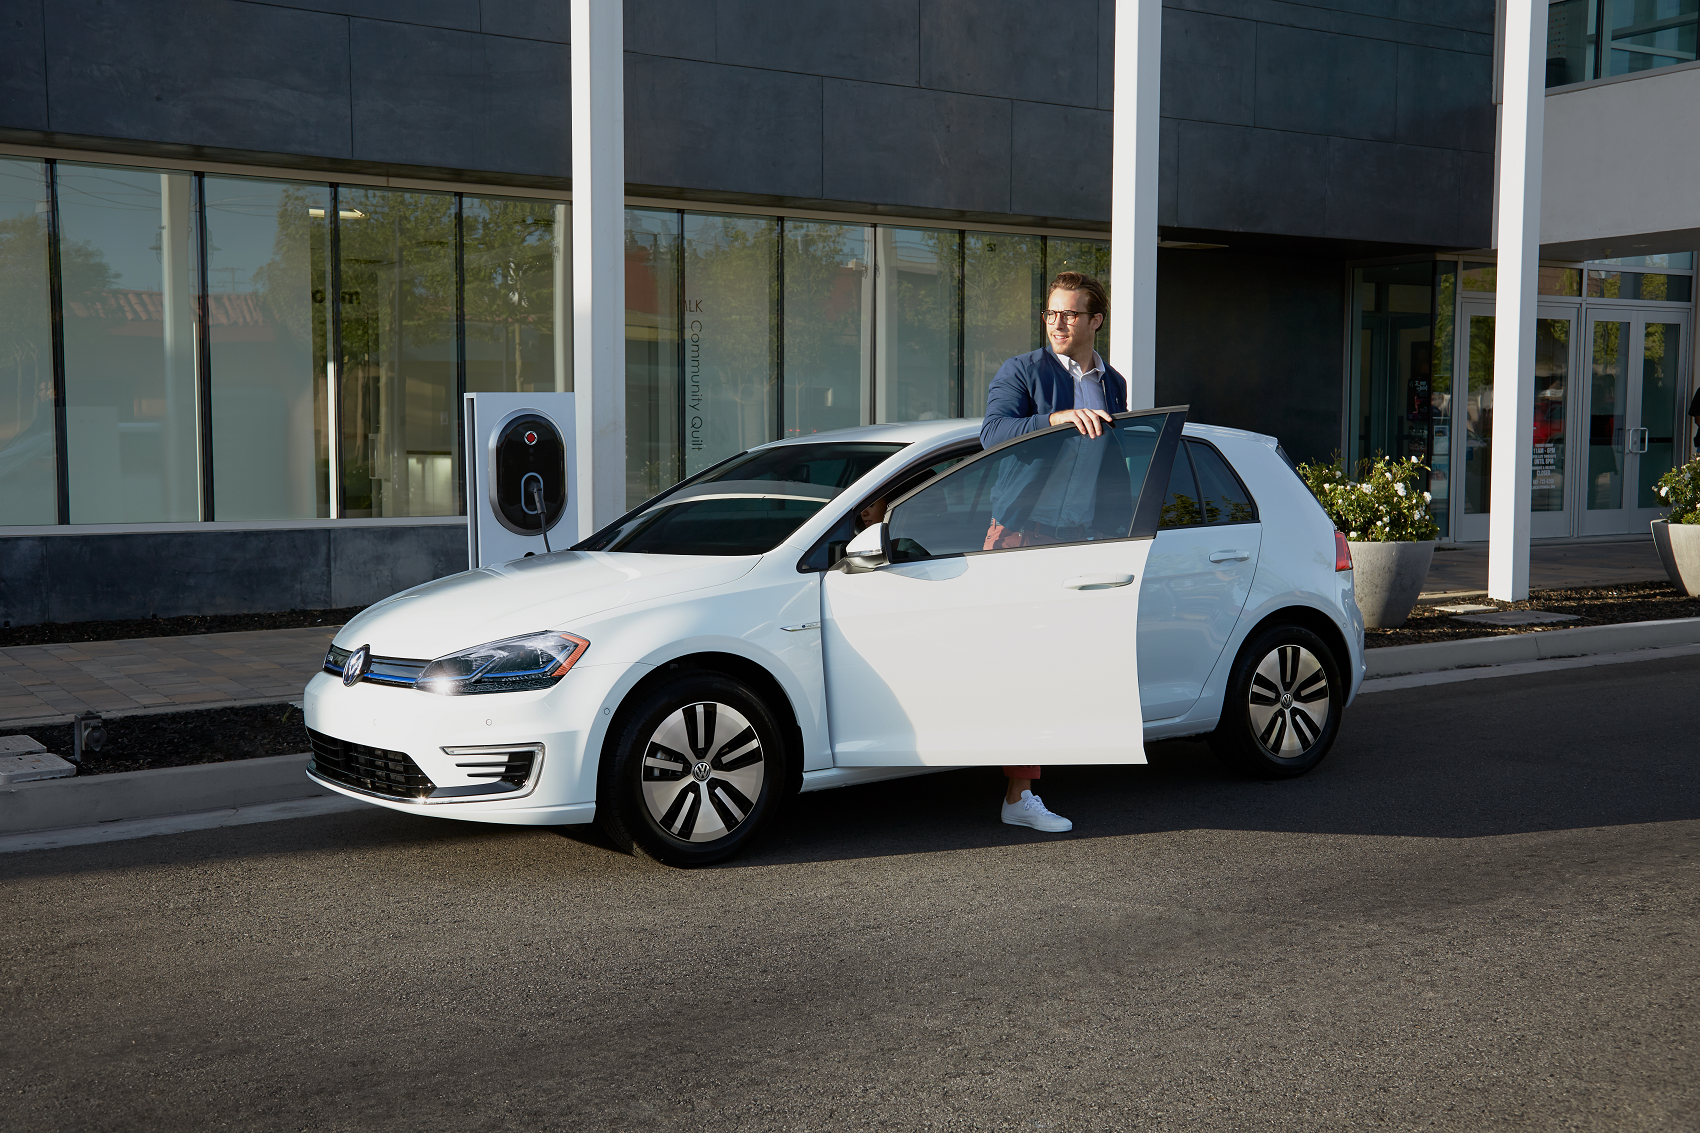 2019 Volkswagen e-Golf Electric Performance